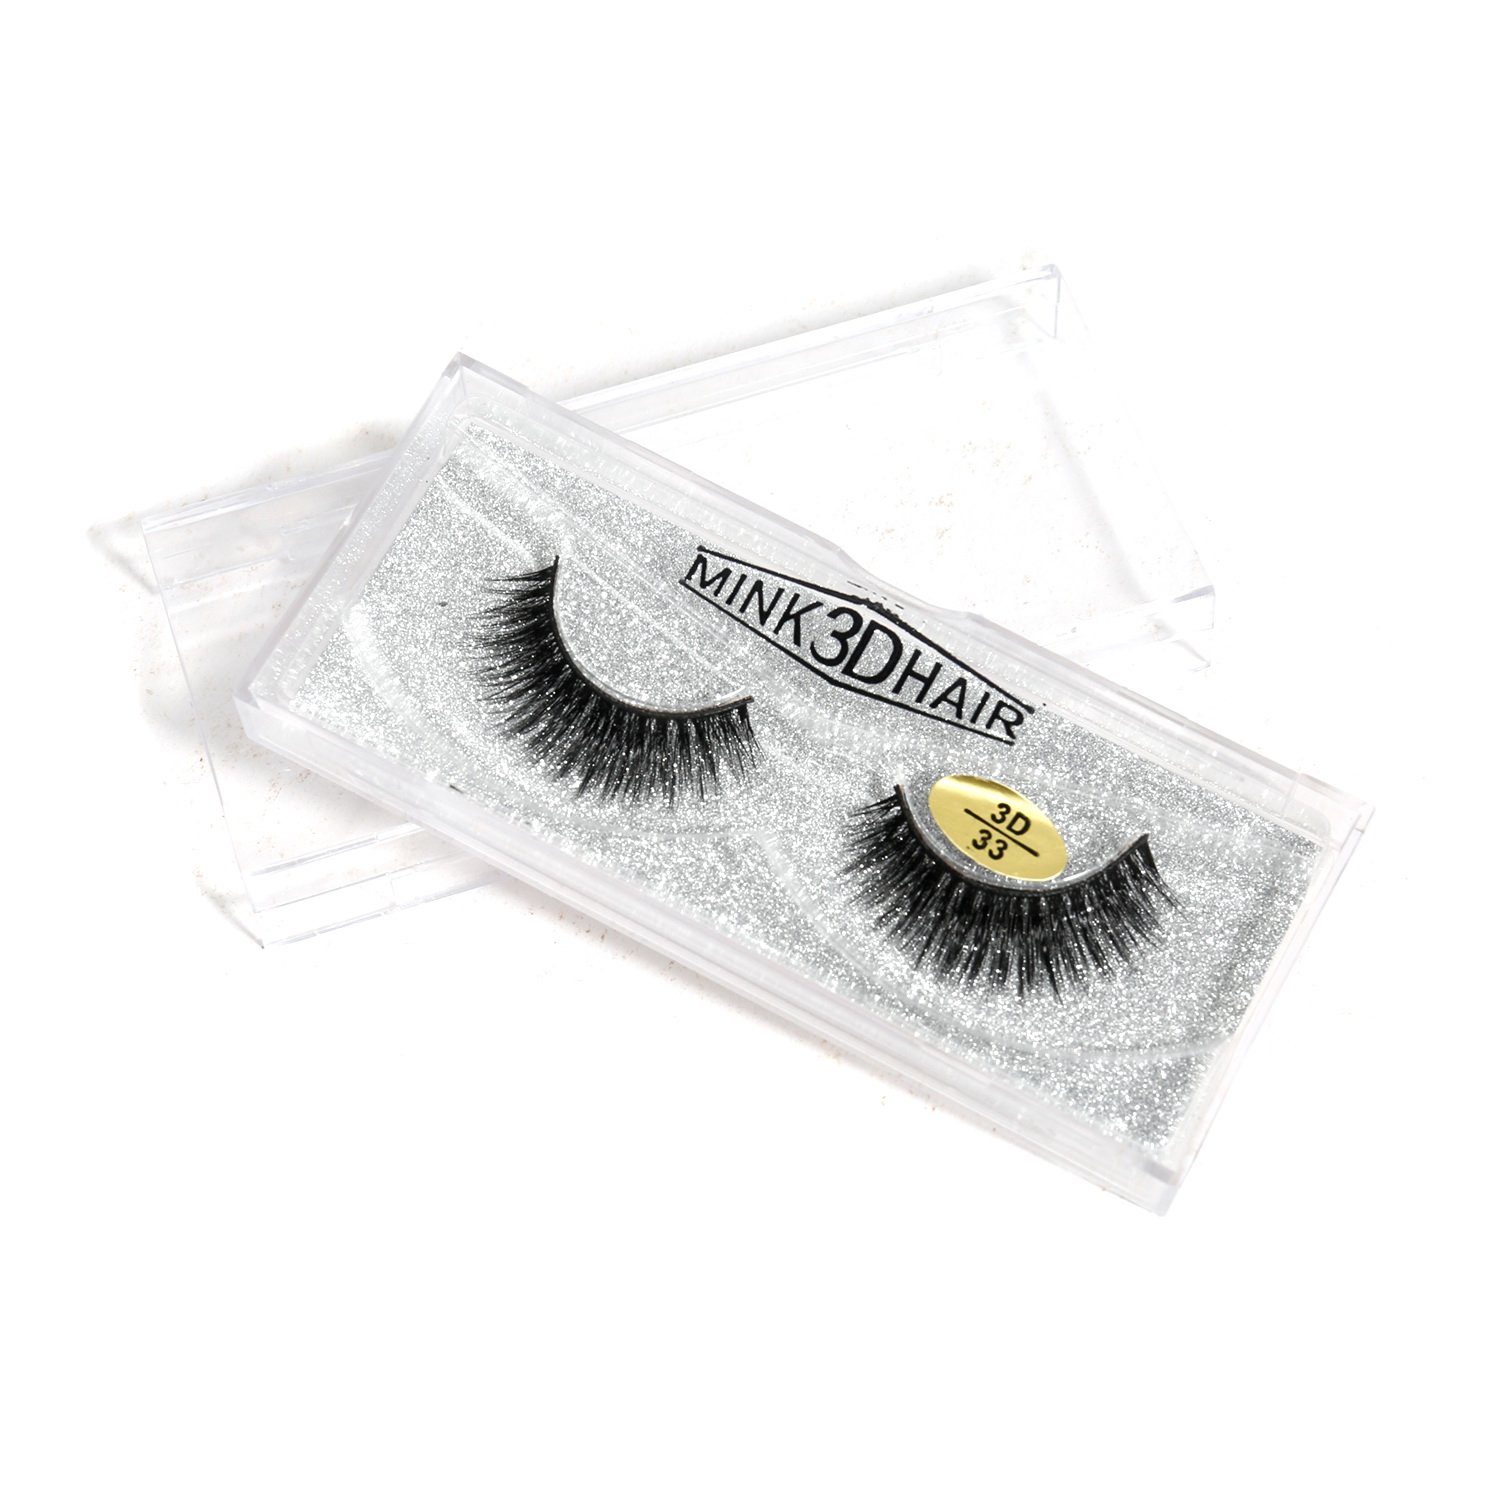 3D Real Mink Eyelashes Natural Long False Eyelashes 100% Hand Made Eyelashes Extension